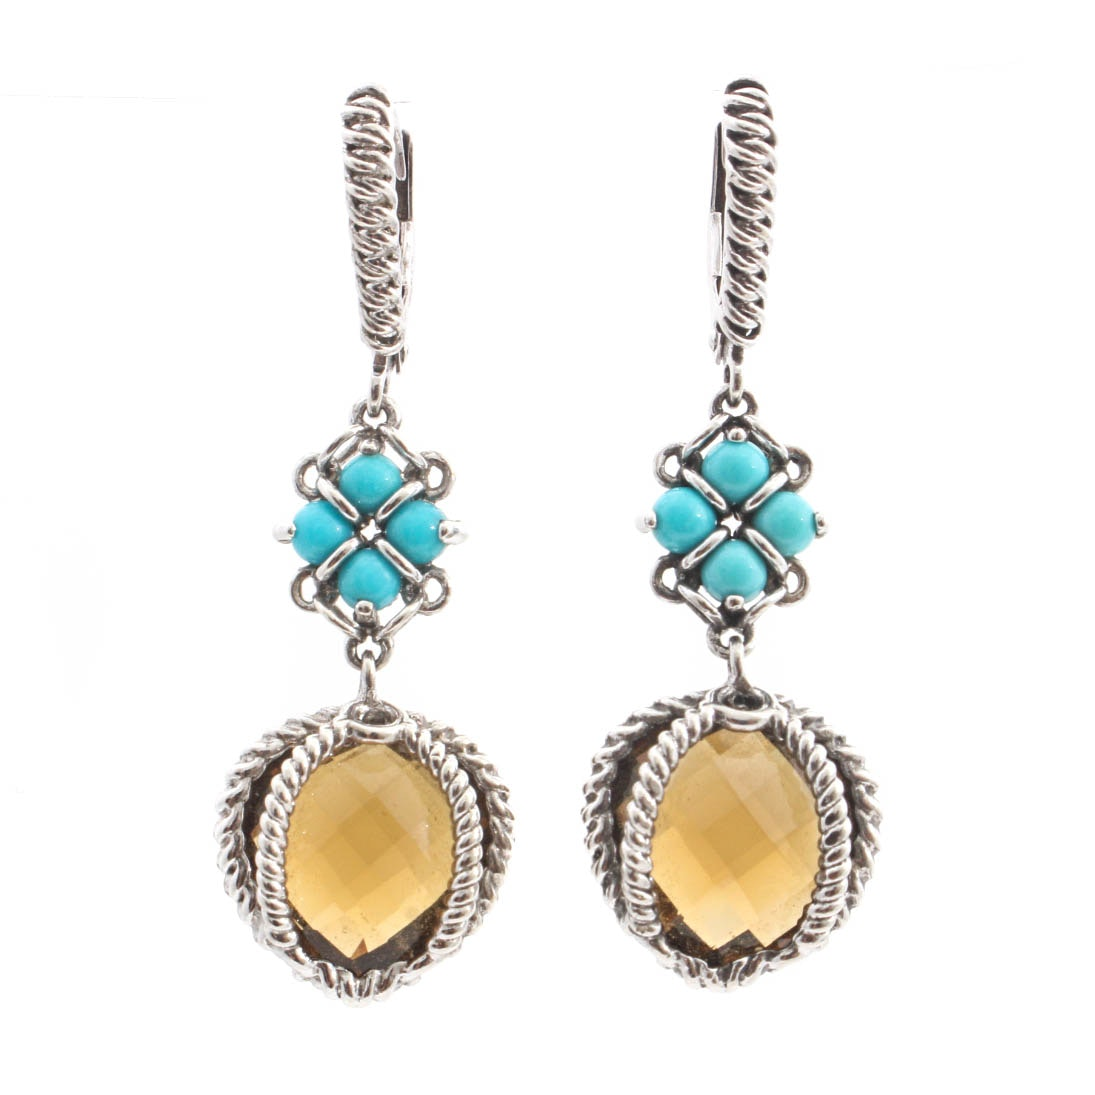 Anthony Nak Sterling Silver Smoky Quartz and Turquoise Earrings